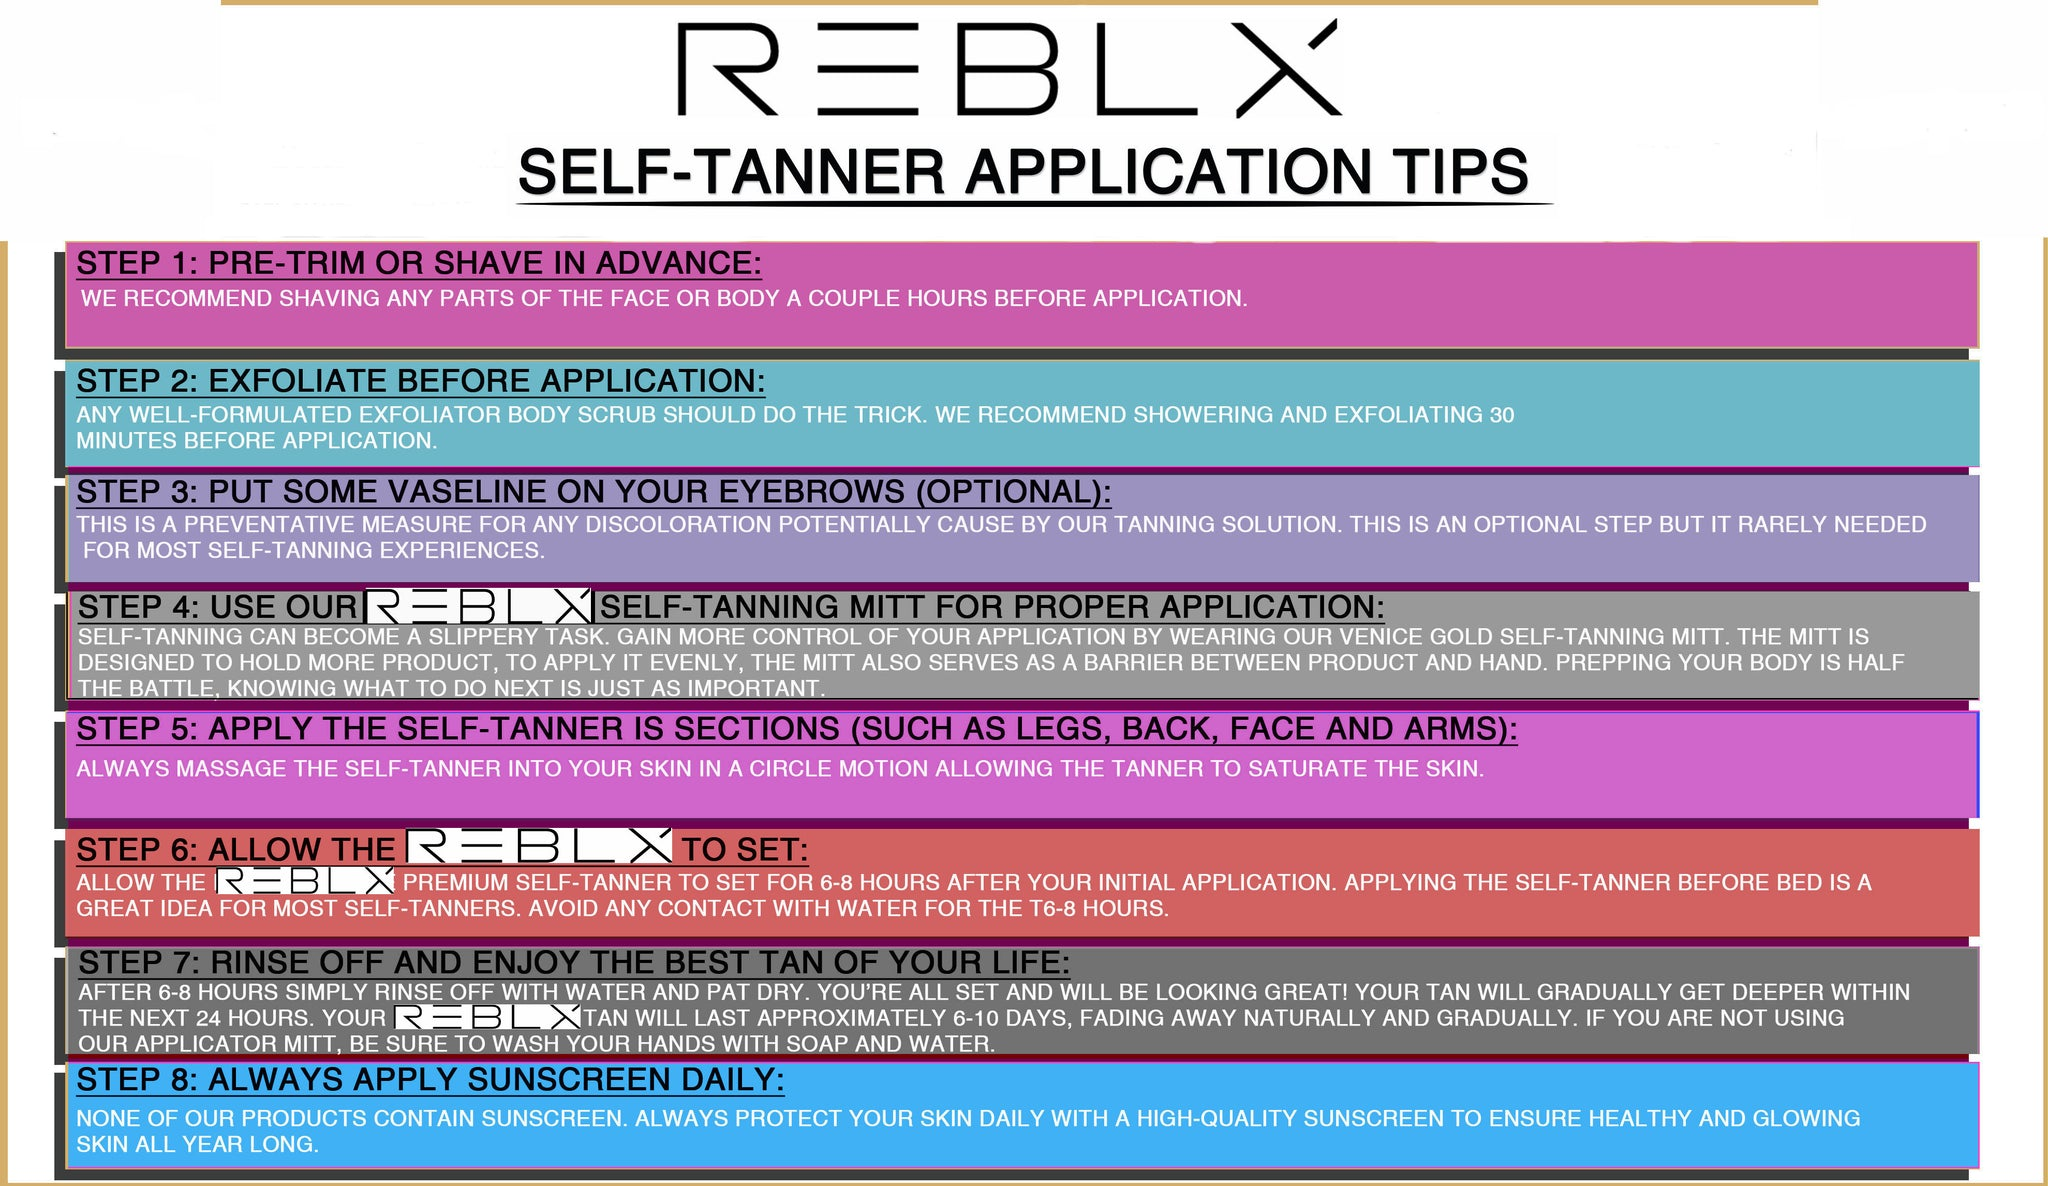 REBLX Self-Tanner Application Tips